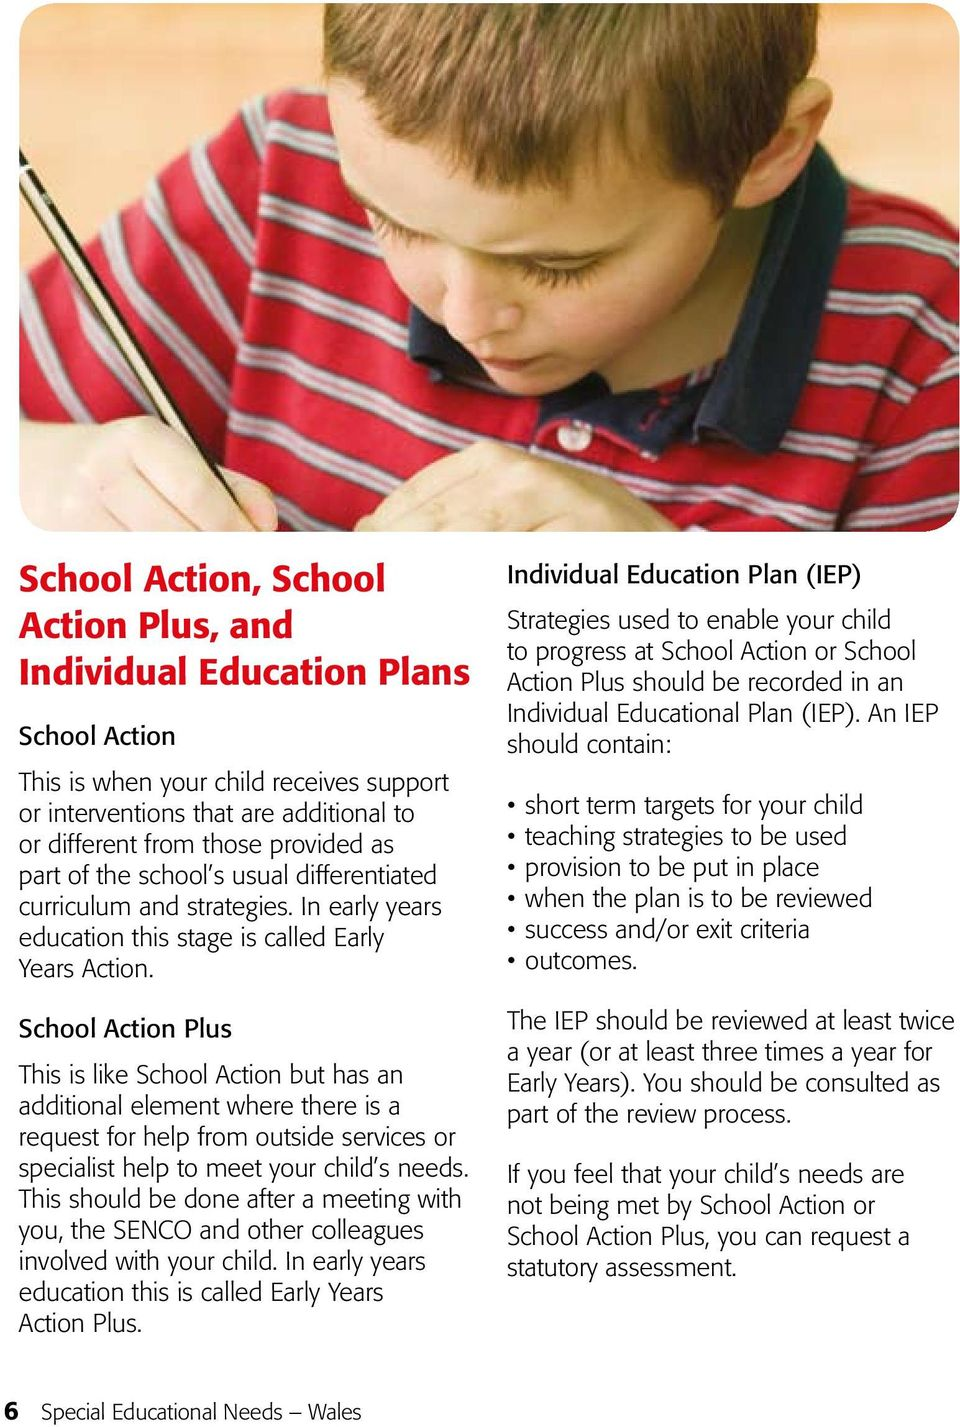 School Action Plus This is like School Action but has an additional element where there is a request for help from outside services or specialist help to meet your child s needs.